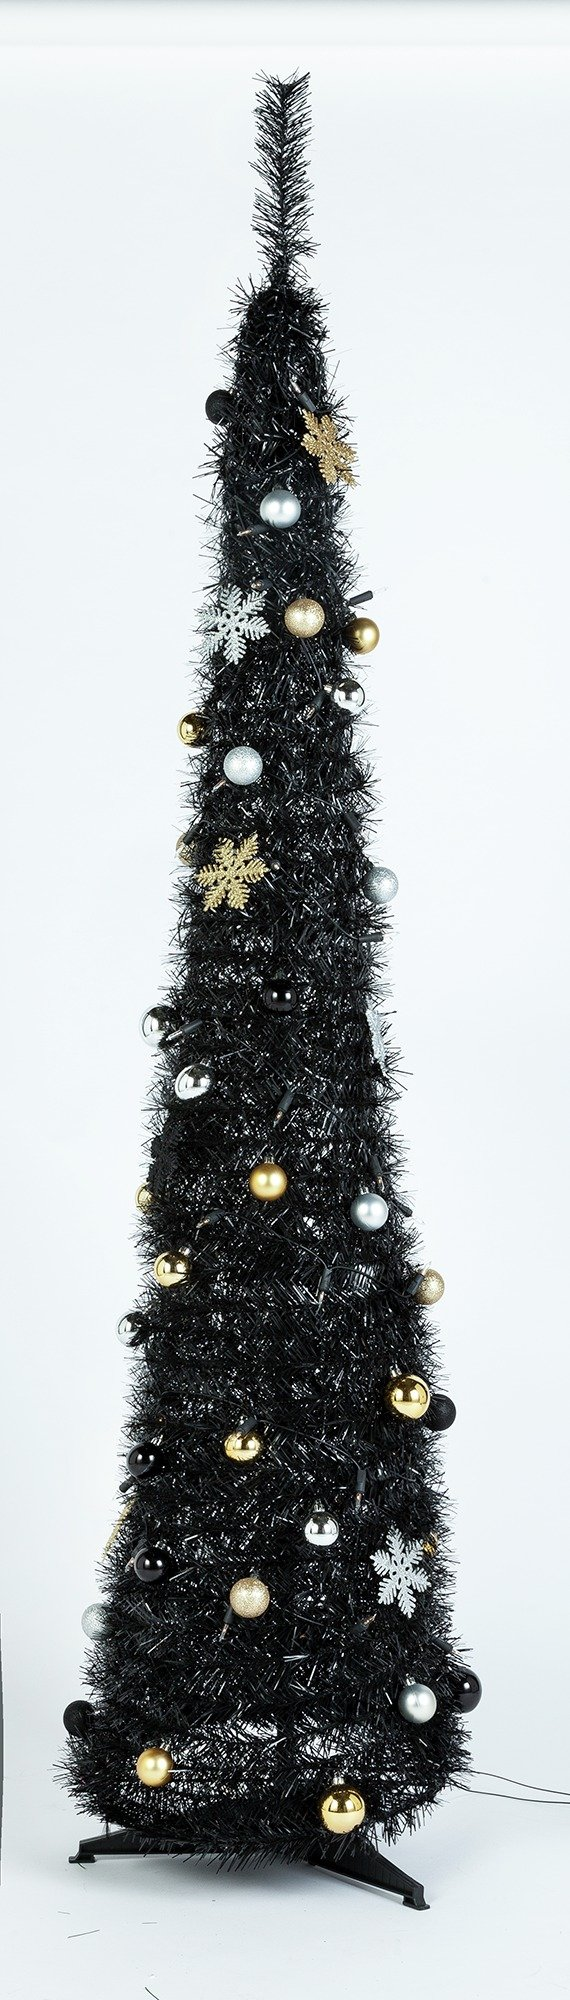 Pics Of Christmas Trees buy 6ft pop up luxe christmas tree at argos.co.uk - your online